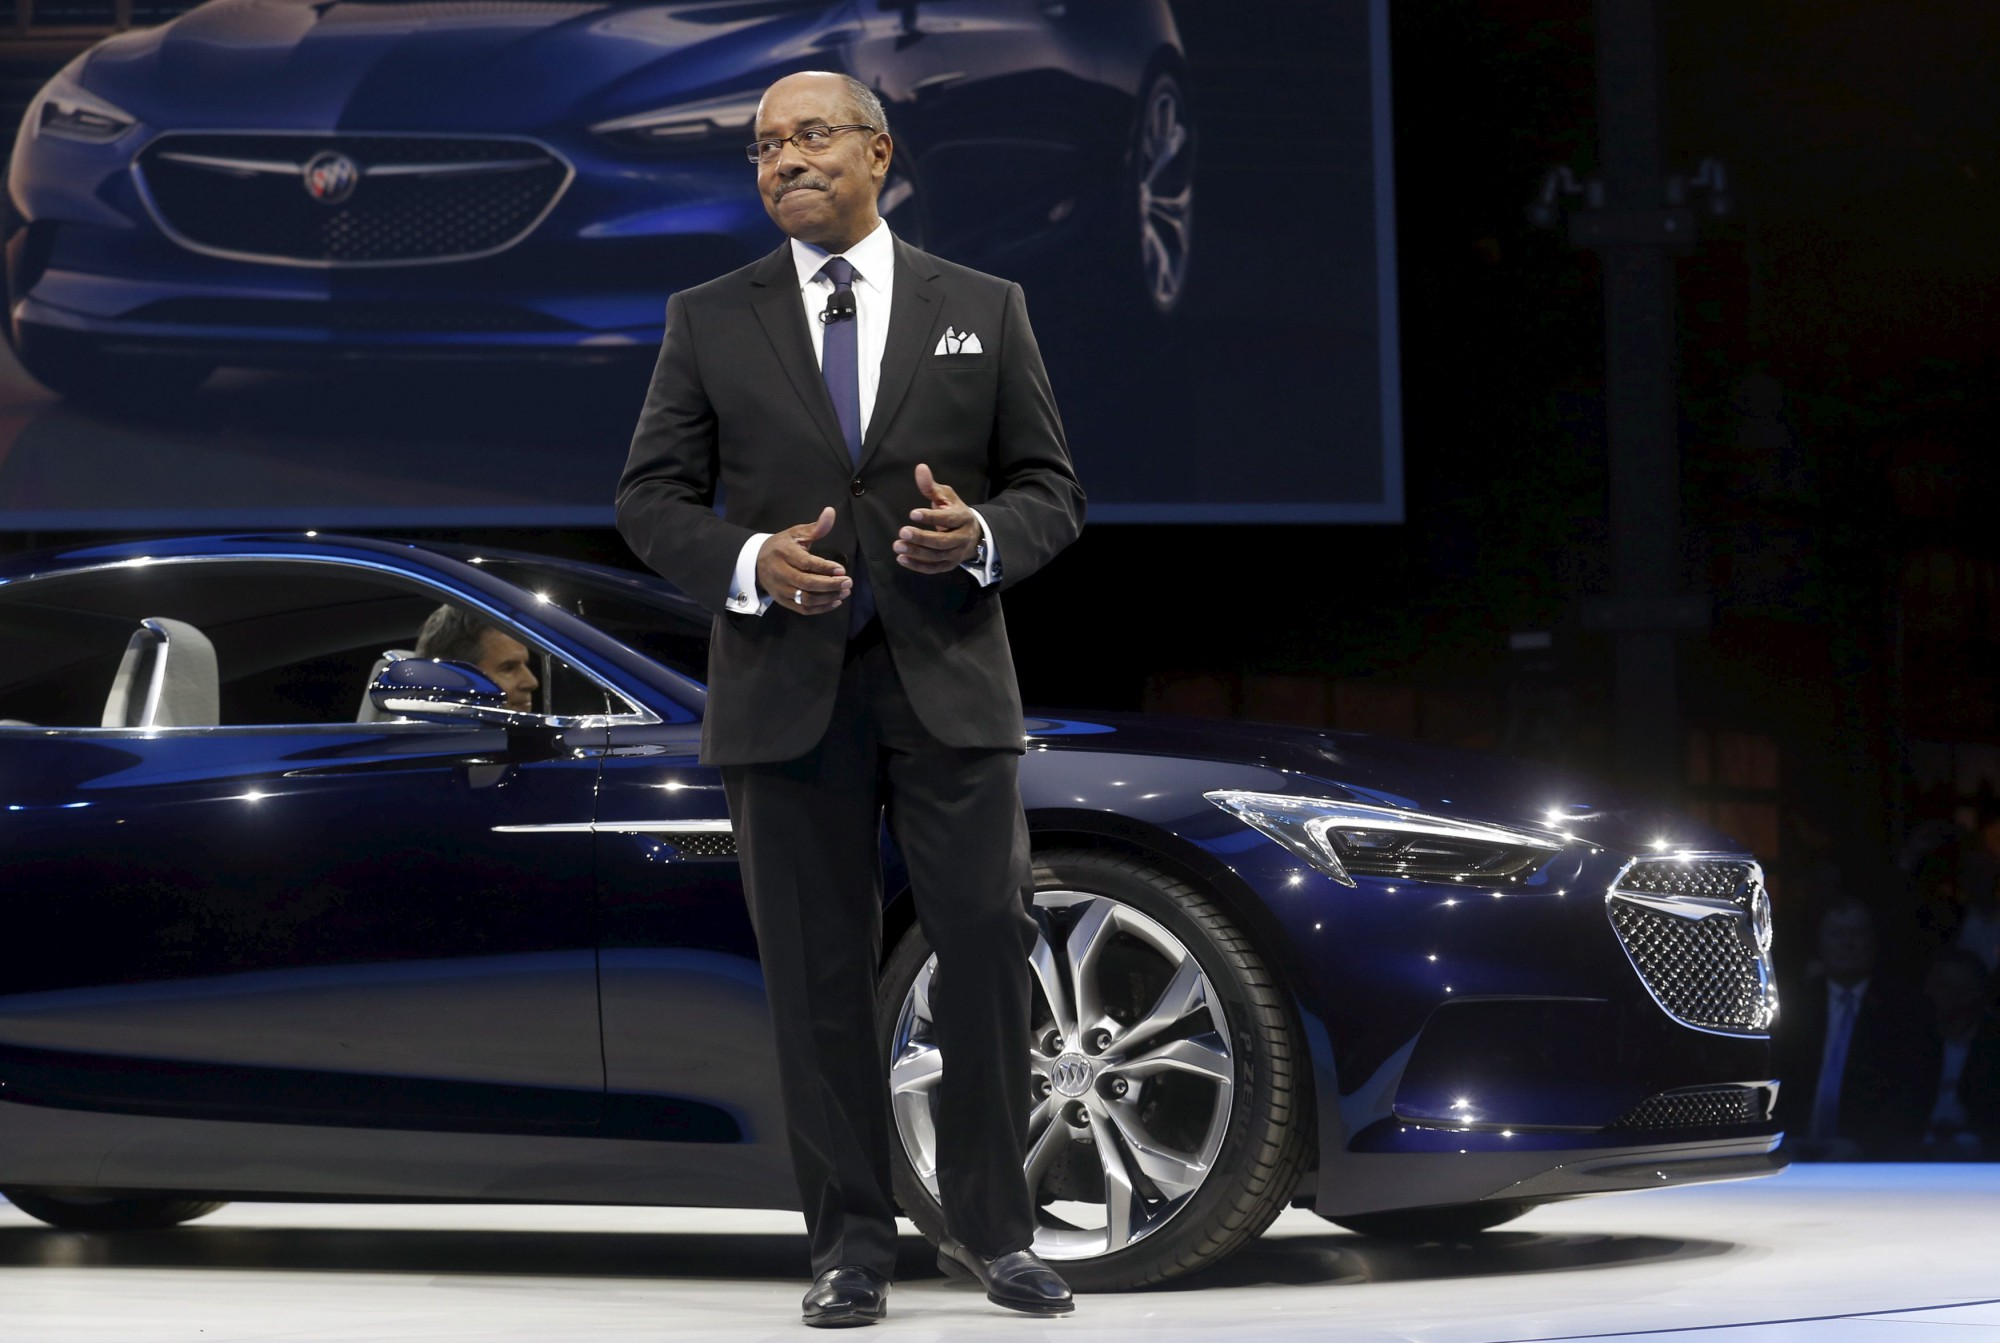 File photo of Ed Welburn talking about the Buick Avista concept vehicle after it was introduced in Detroit